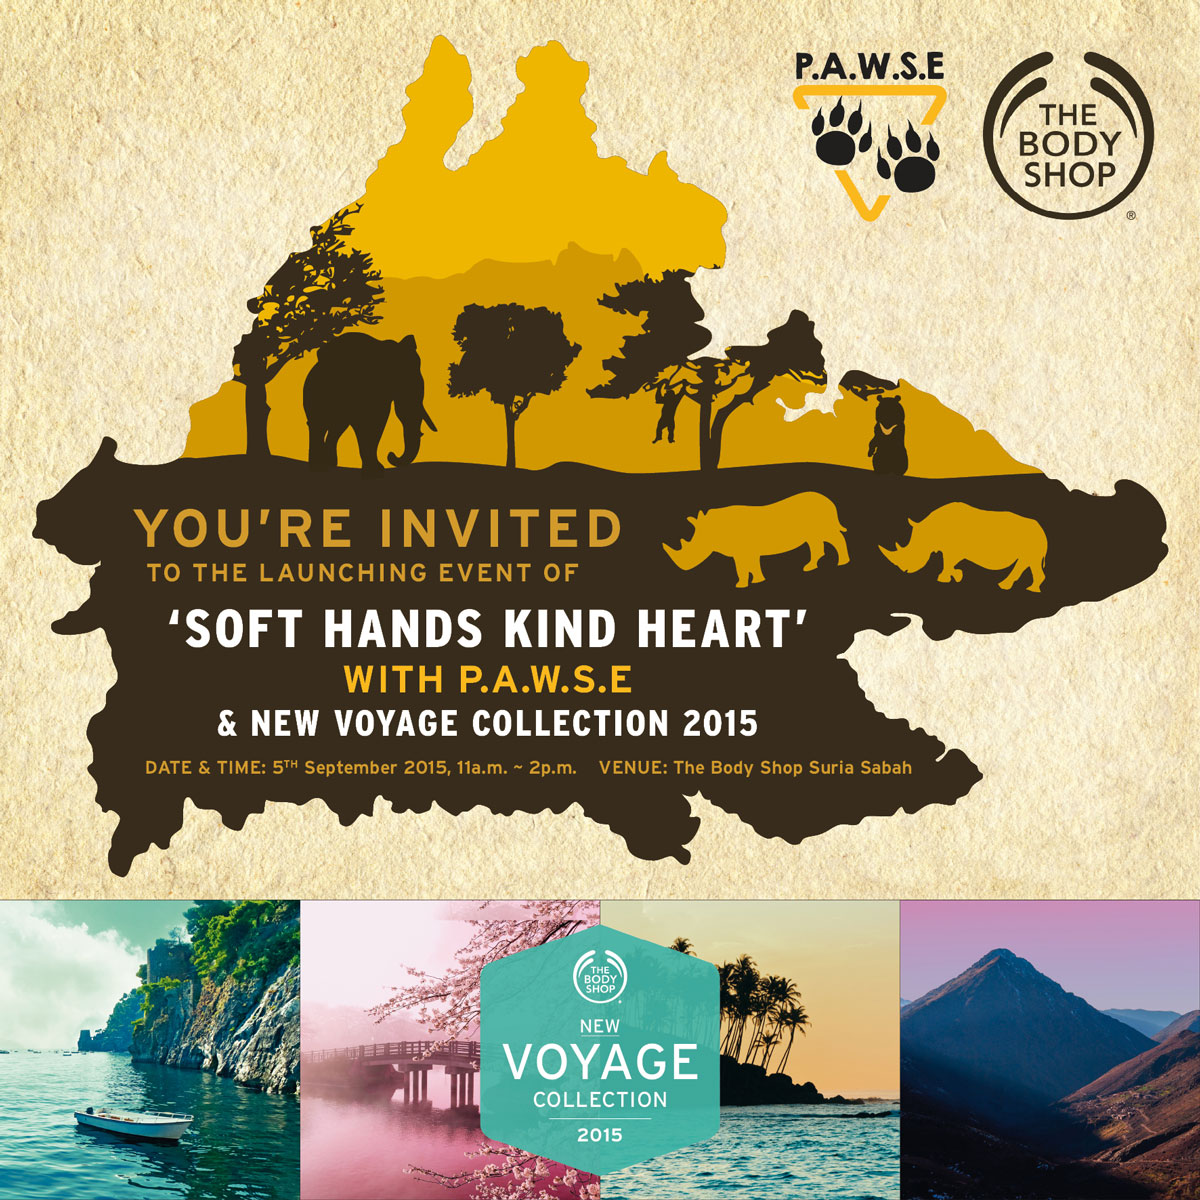 The Body Shop Soft Hands Kind Heart and P.A.W.S.E Charity Invitation Post Design 04